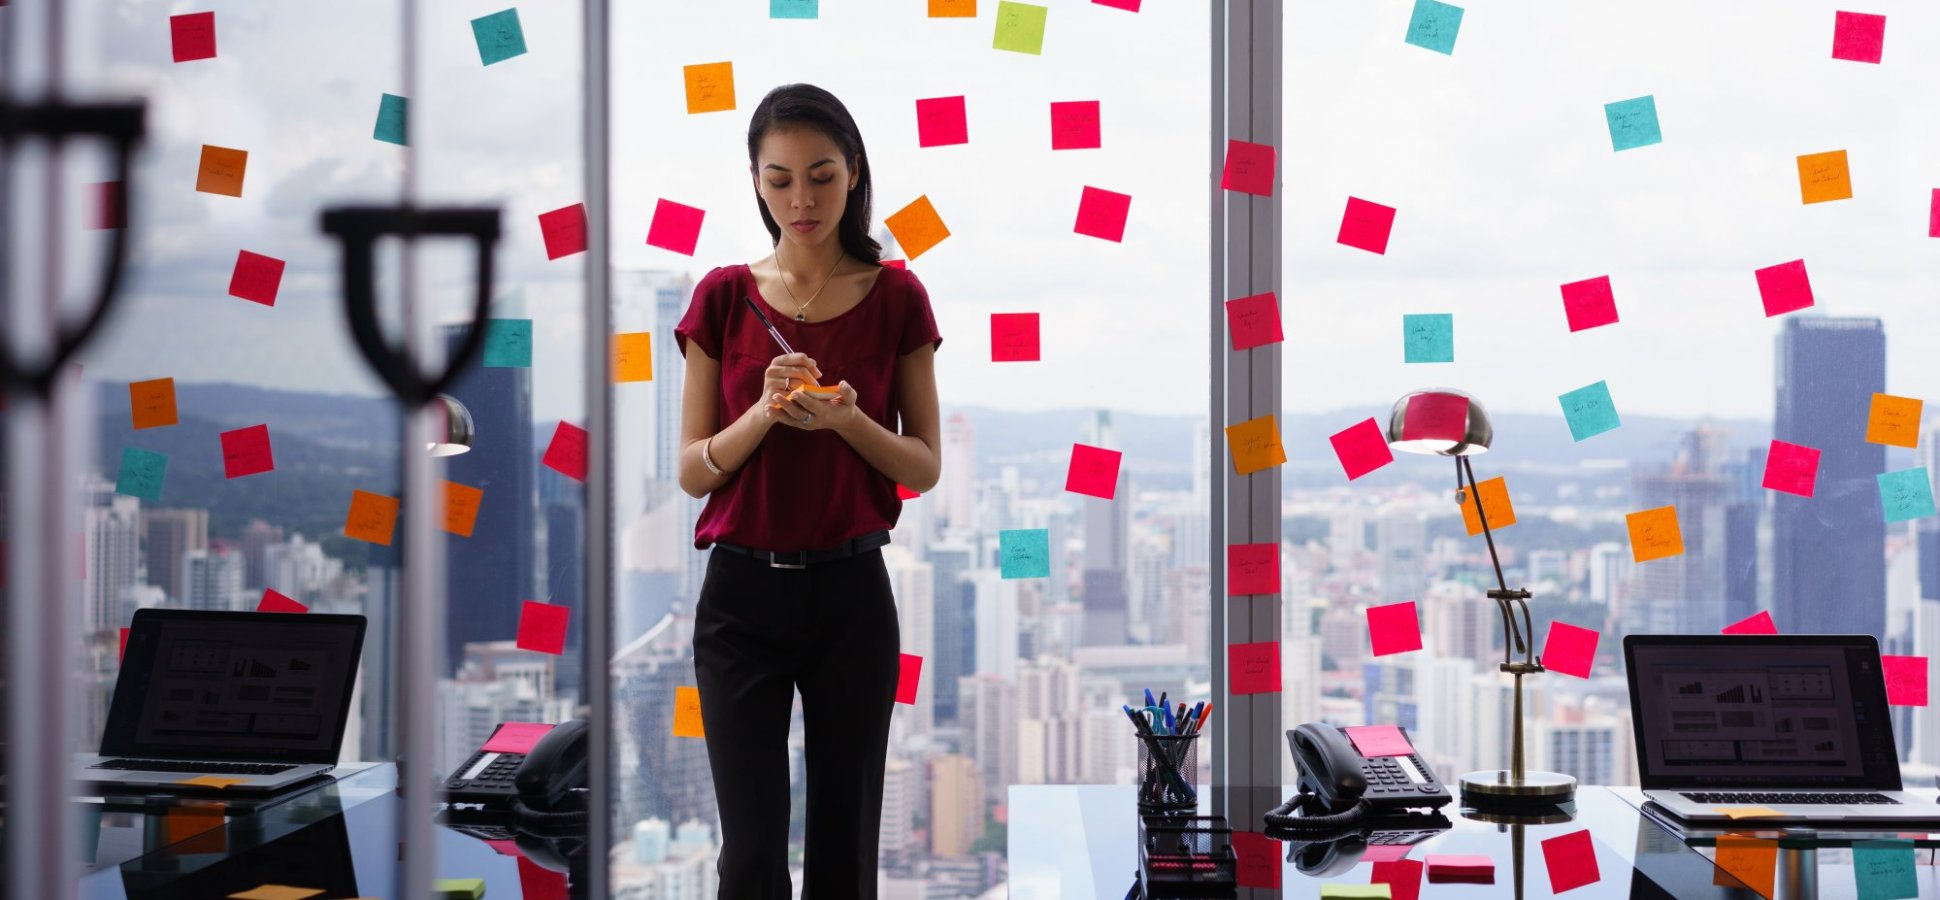 Watch How to Stay Busy at Work video